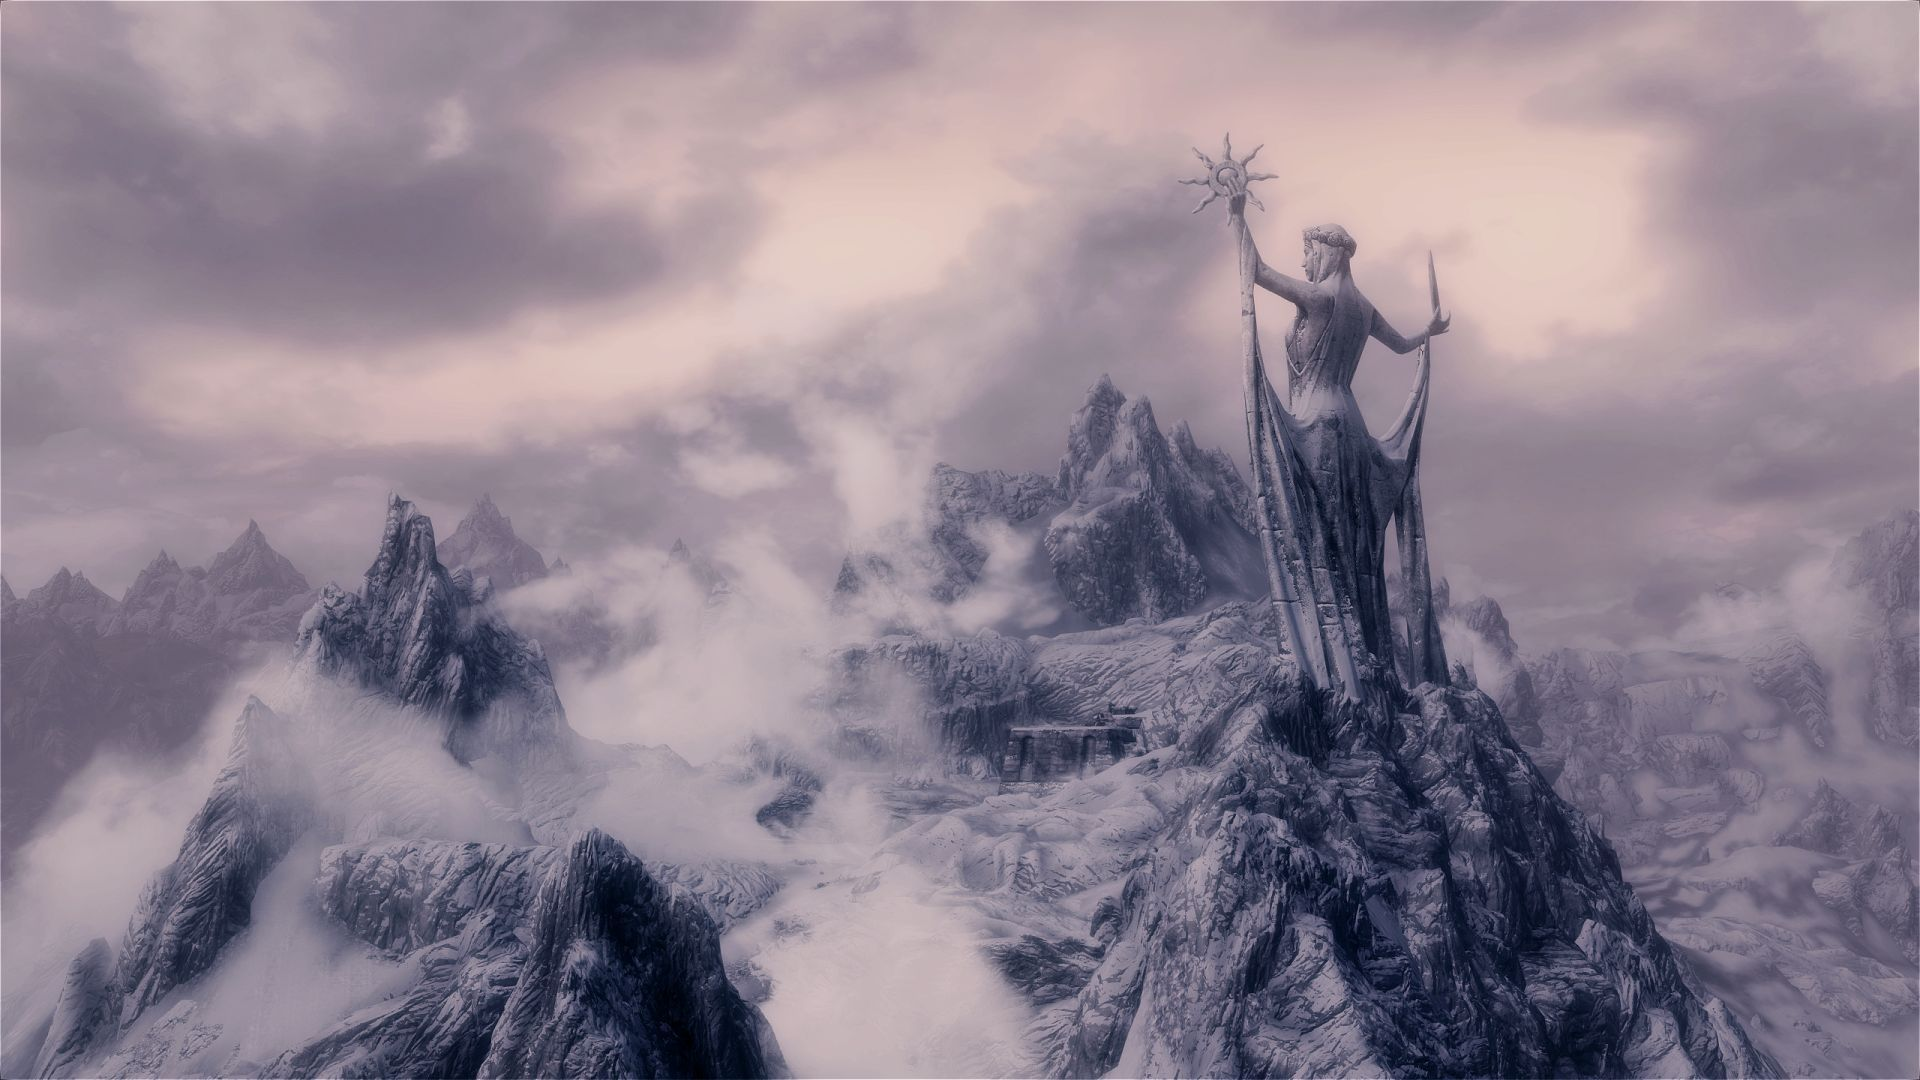 Wallpaper The Elder Scrolls V: Skyrim Statue on the mountain